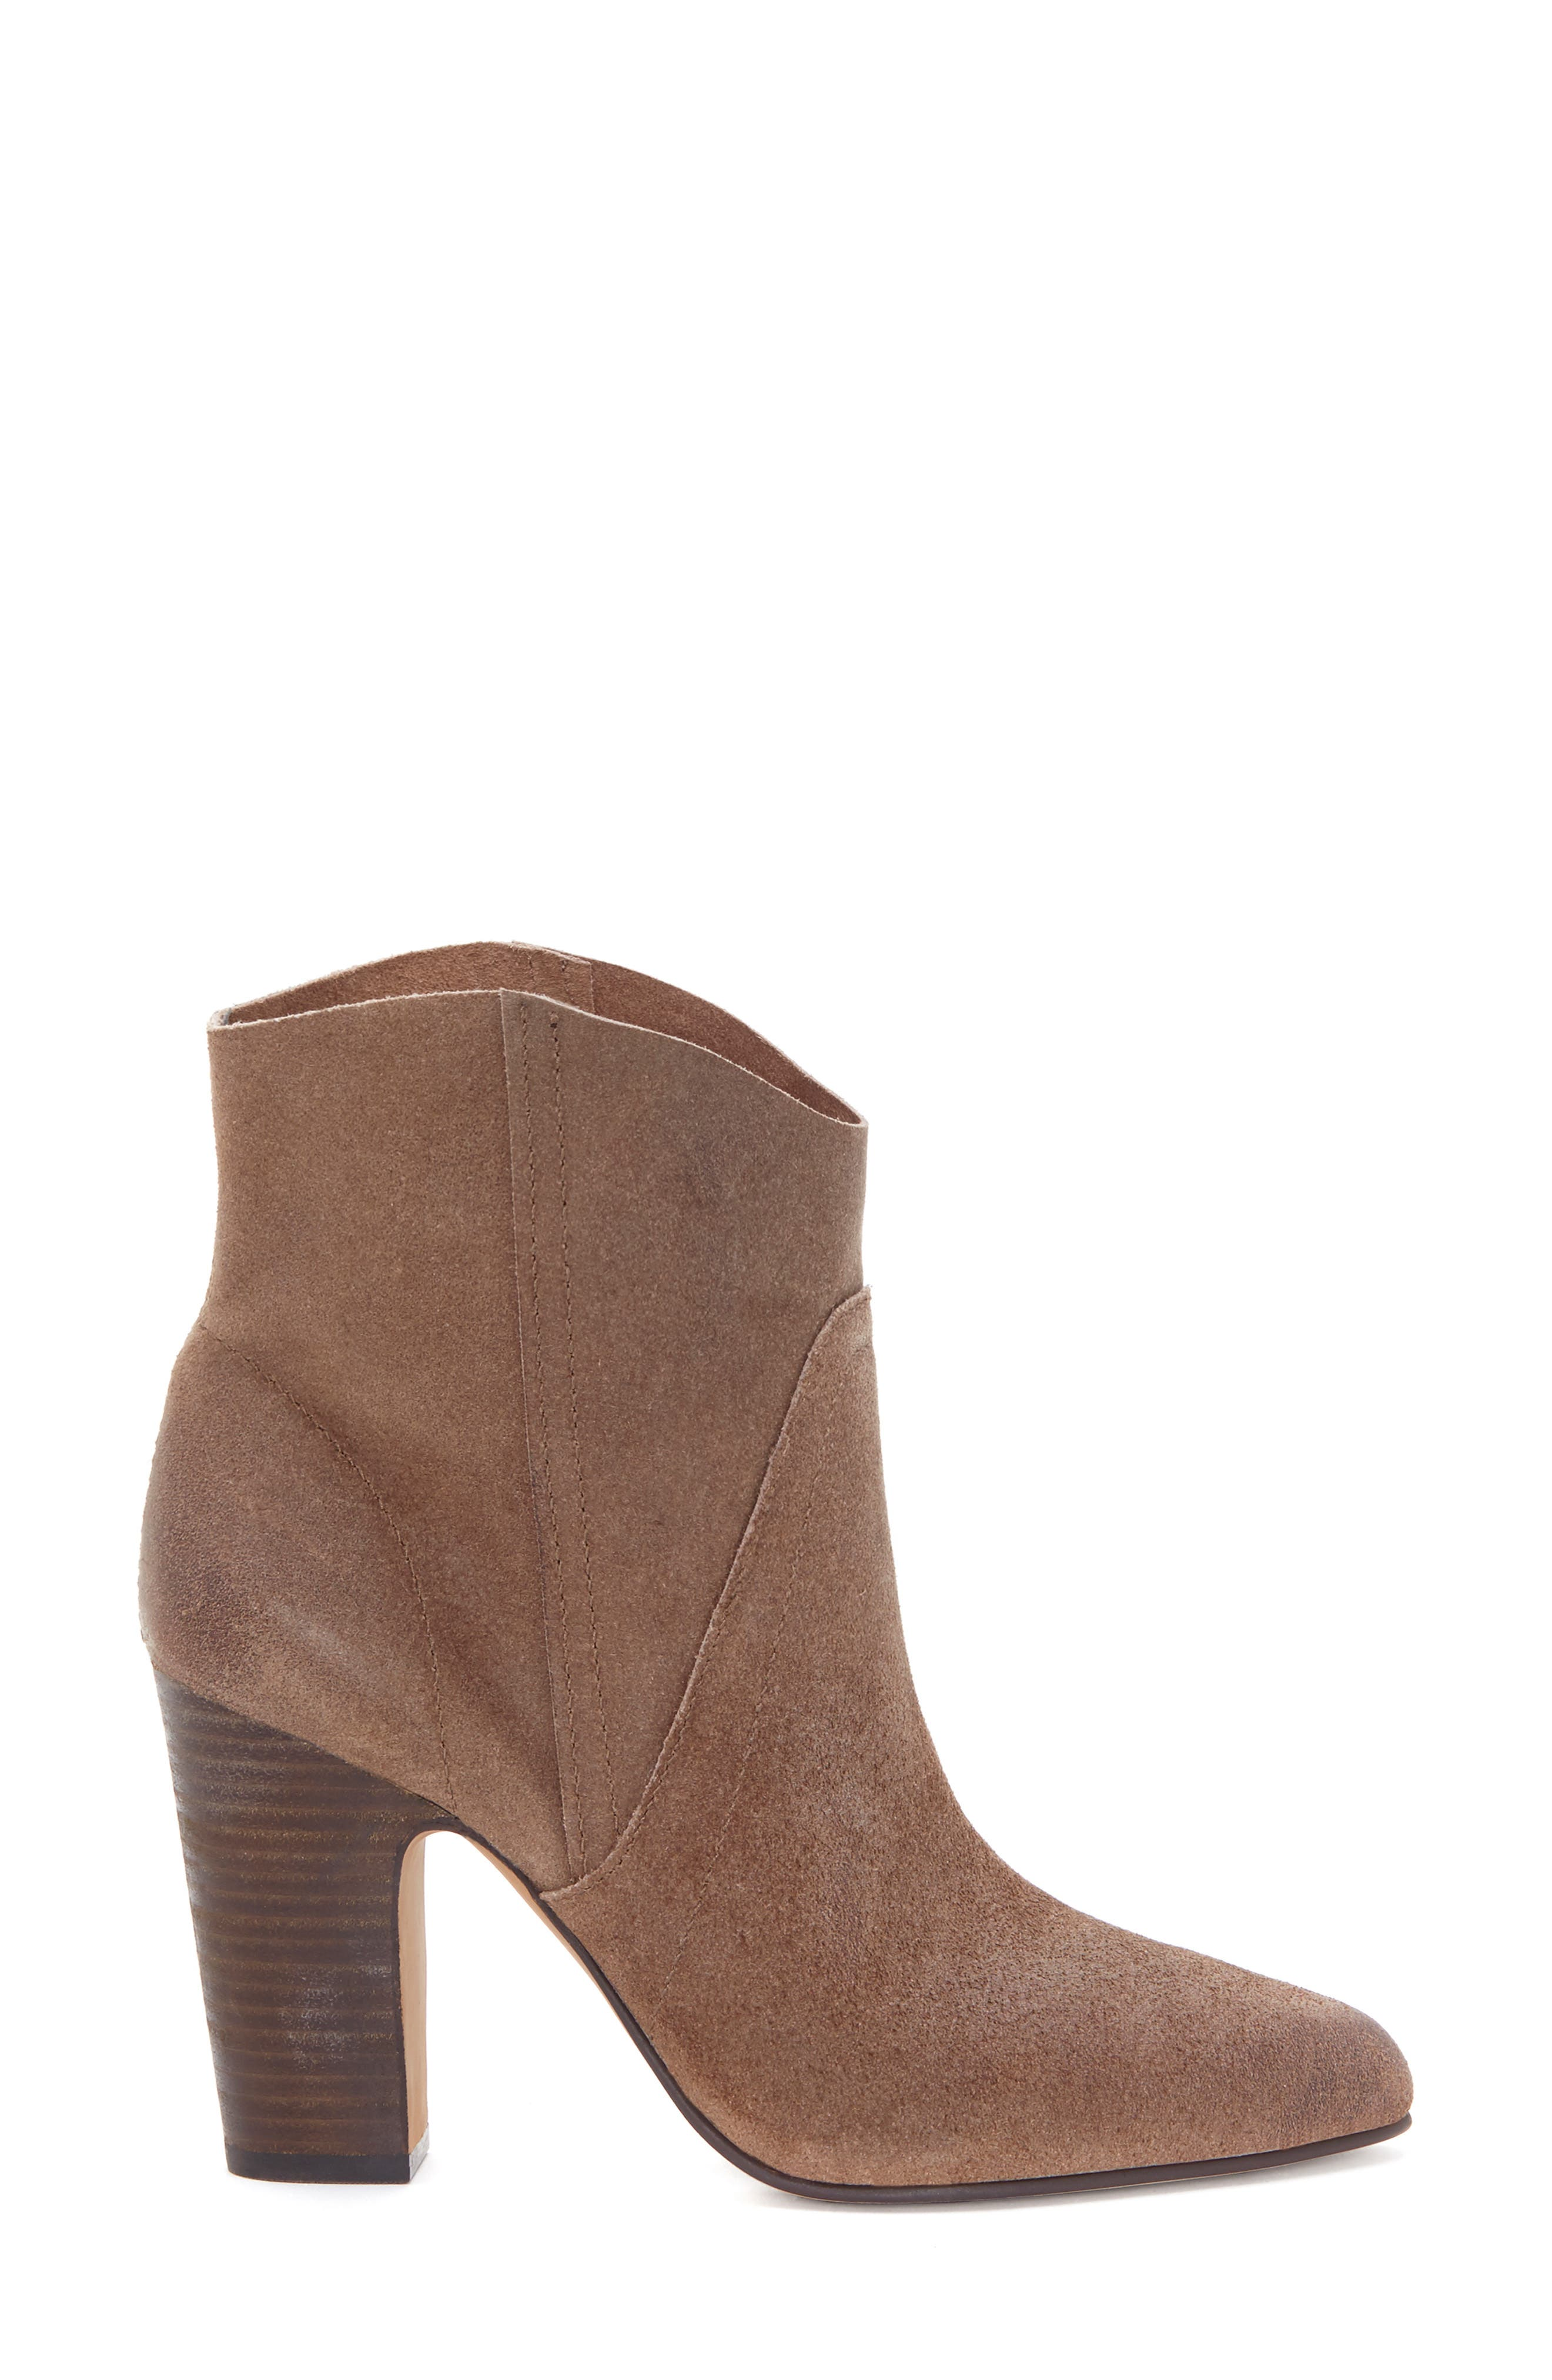 VINCE CAMUTO, Creestal Western Bootie, Alternate thumbnail 3, color, BEDROCK LEATHER